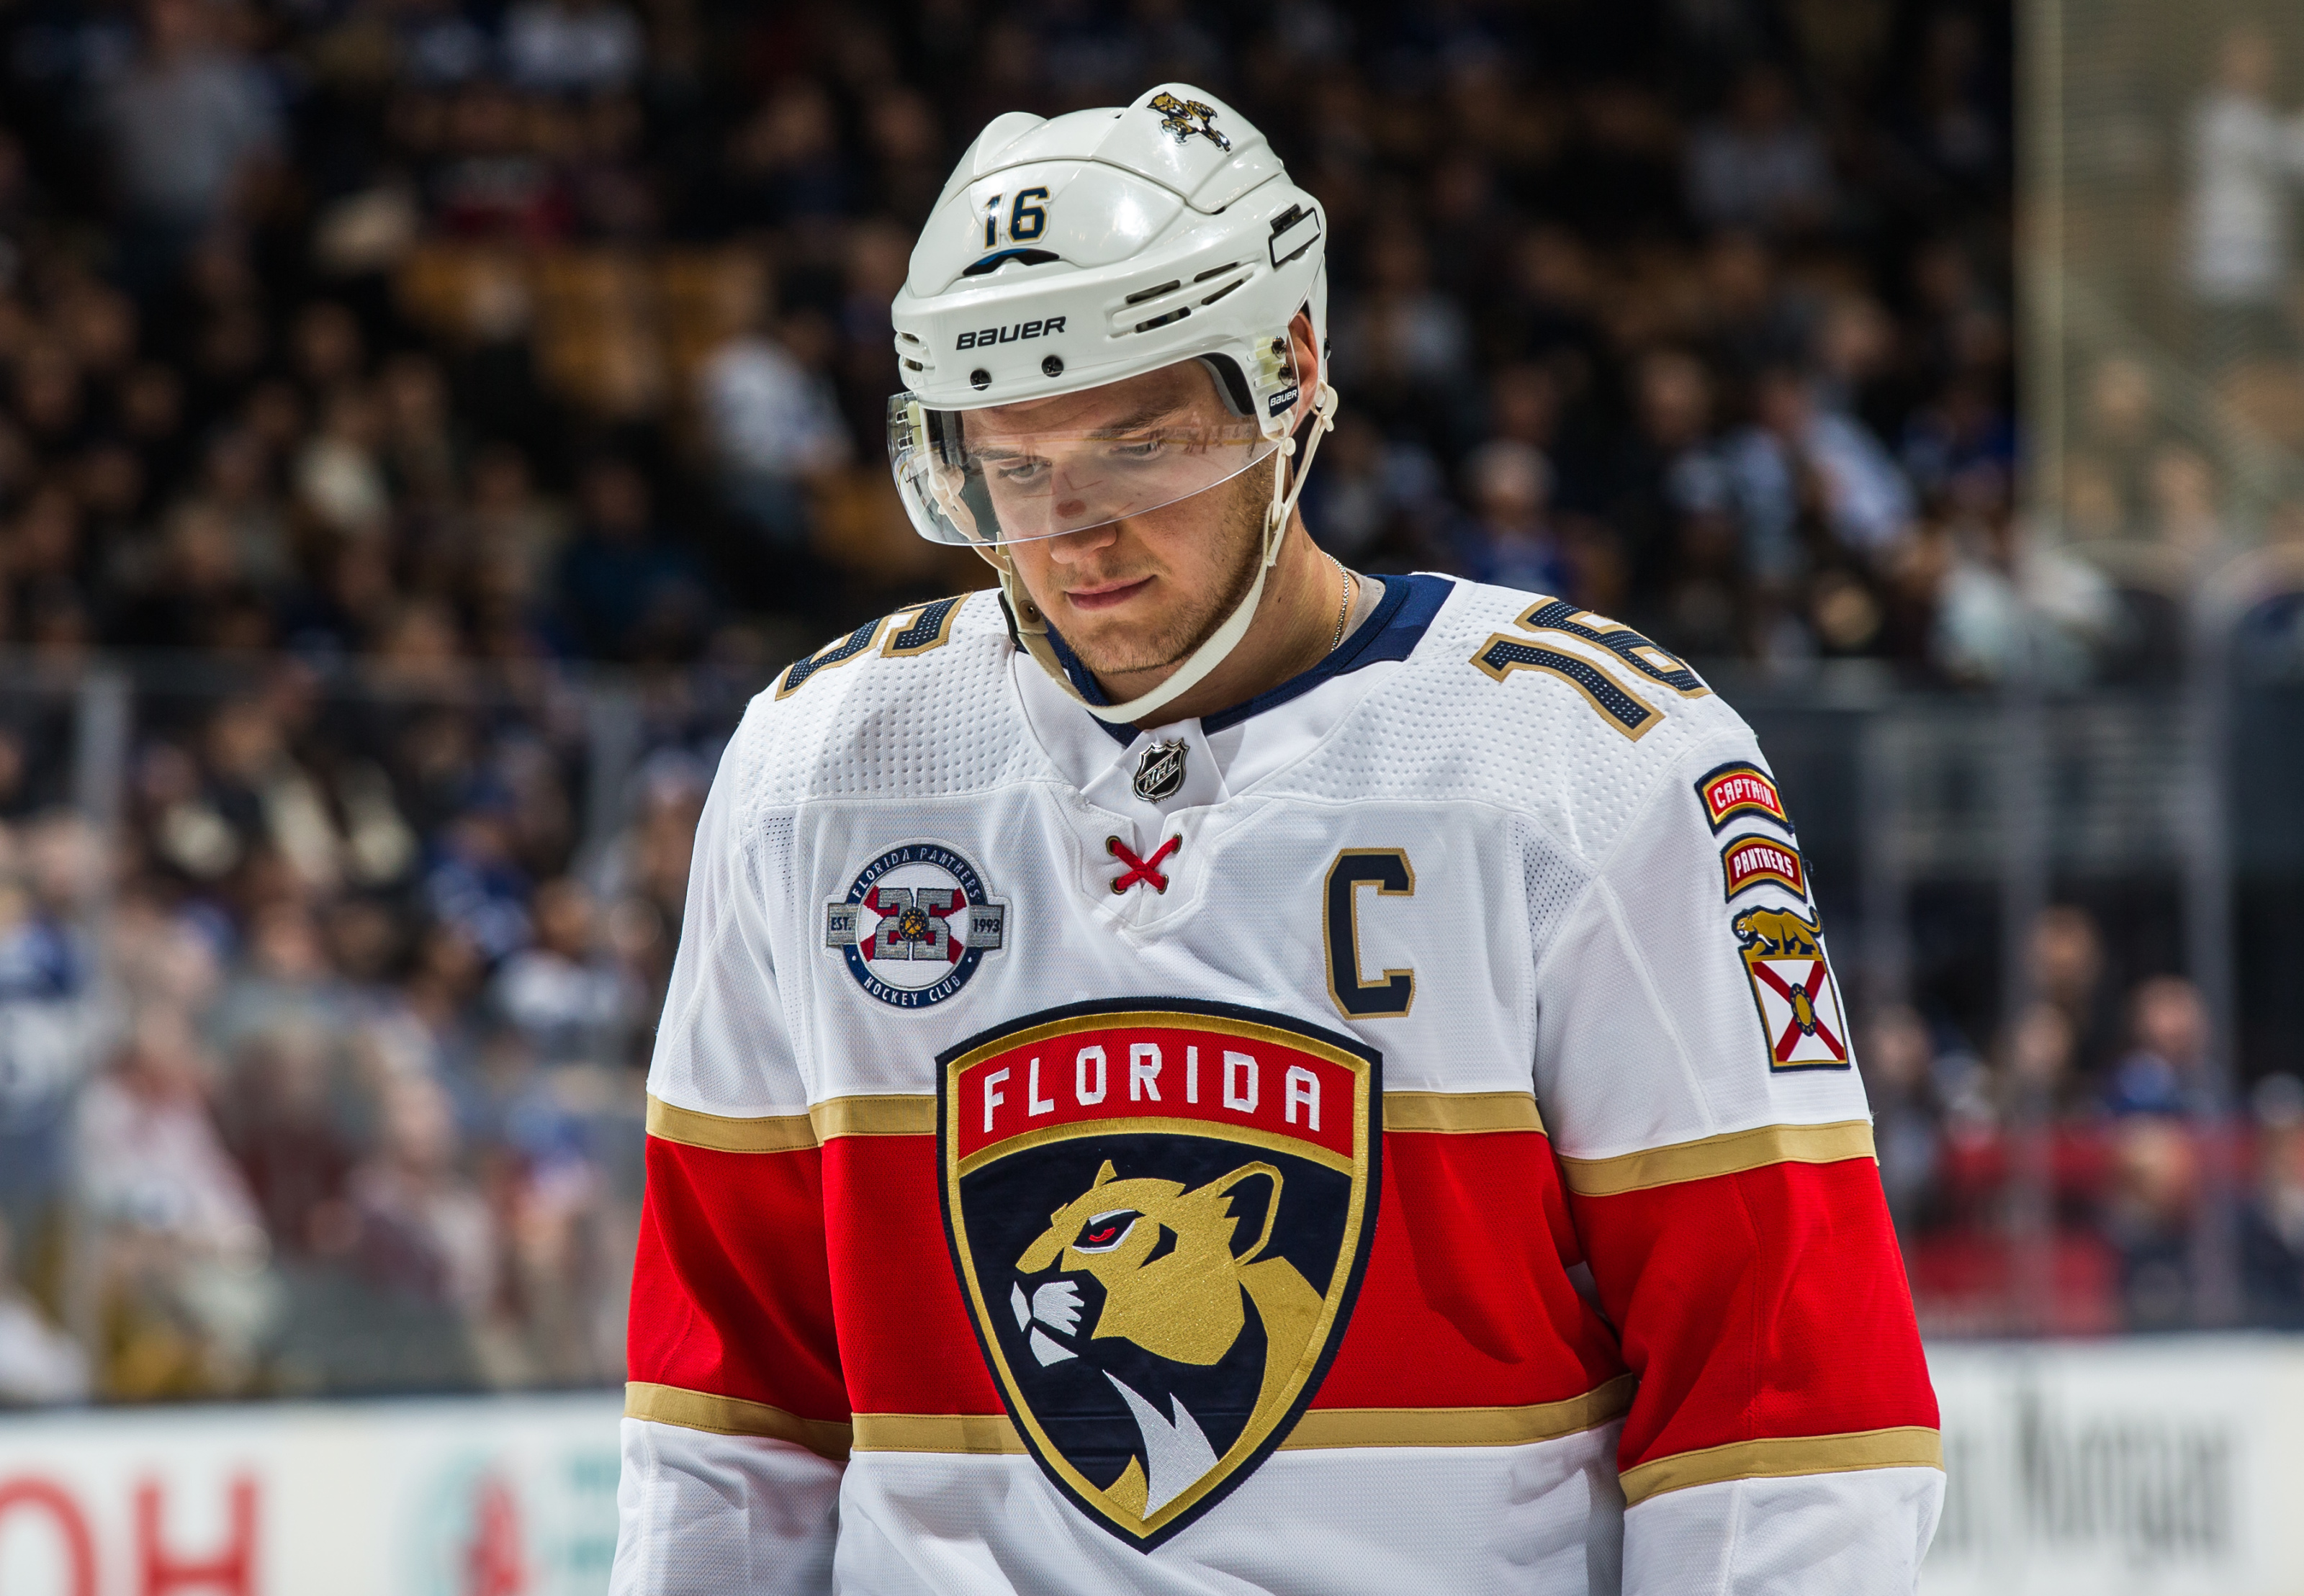 The Florida Panthers waste another promising season with playoff miss